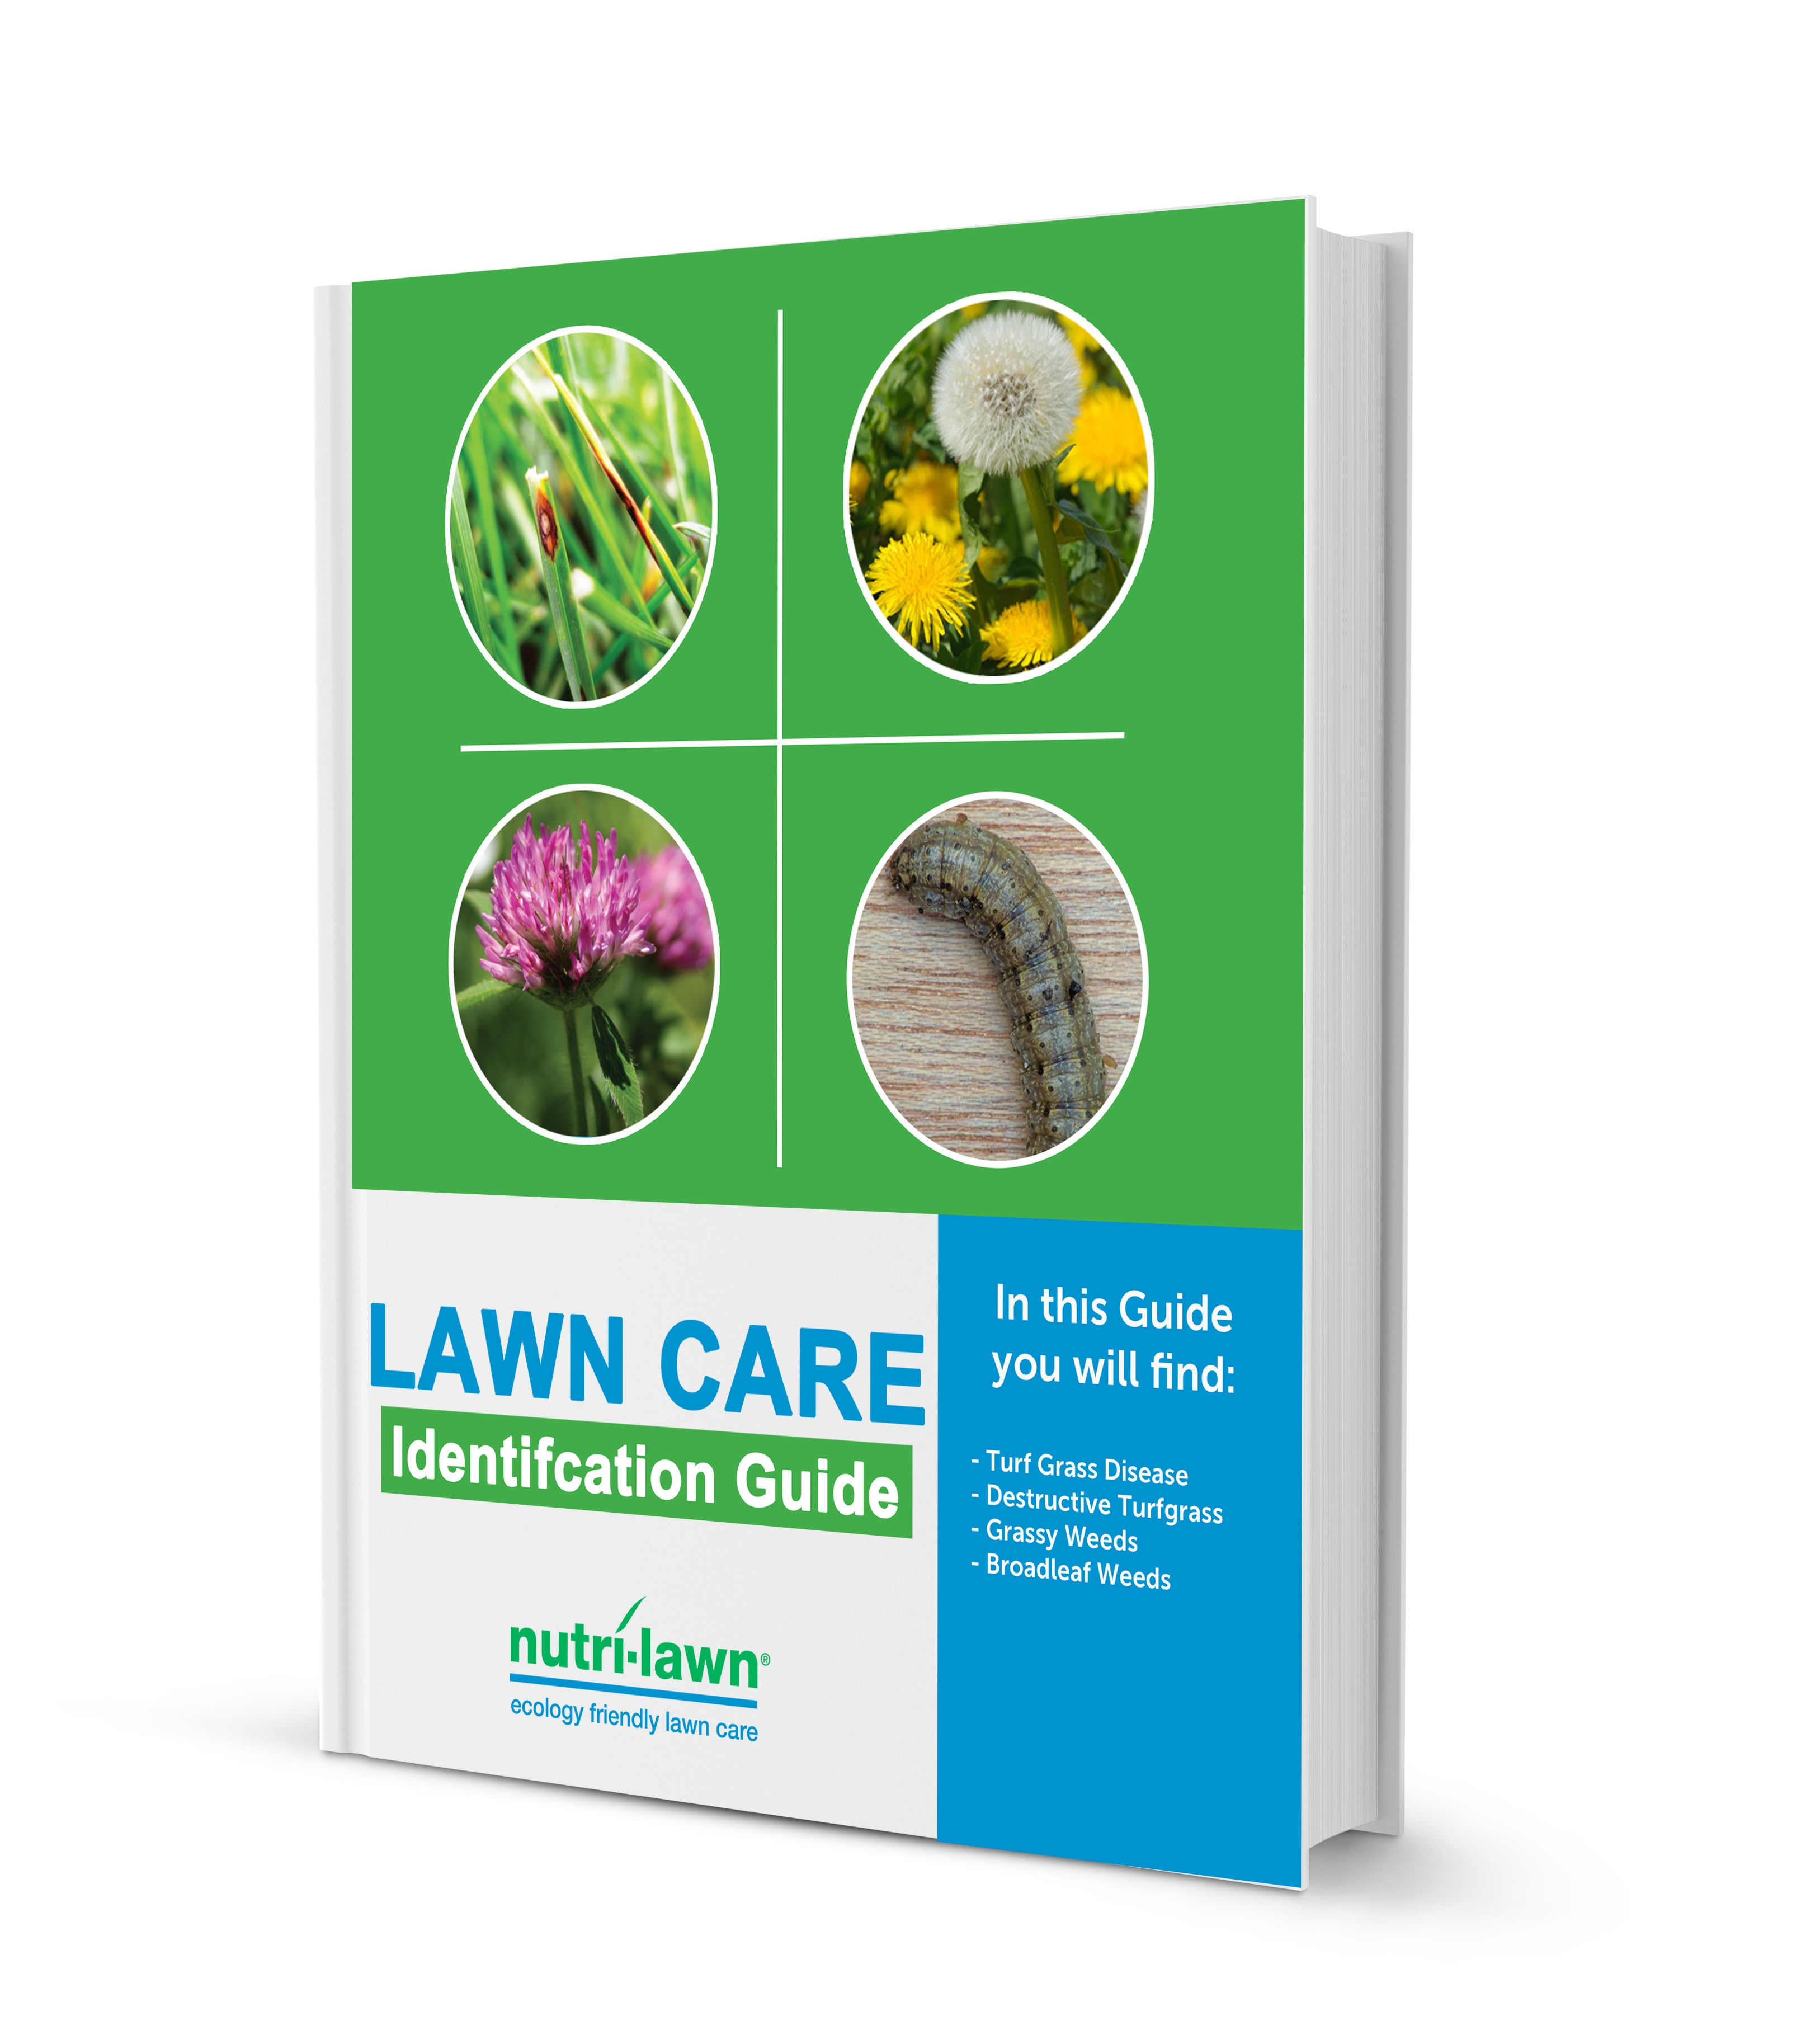 Lawn Care Identification Guide